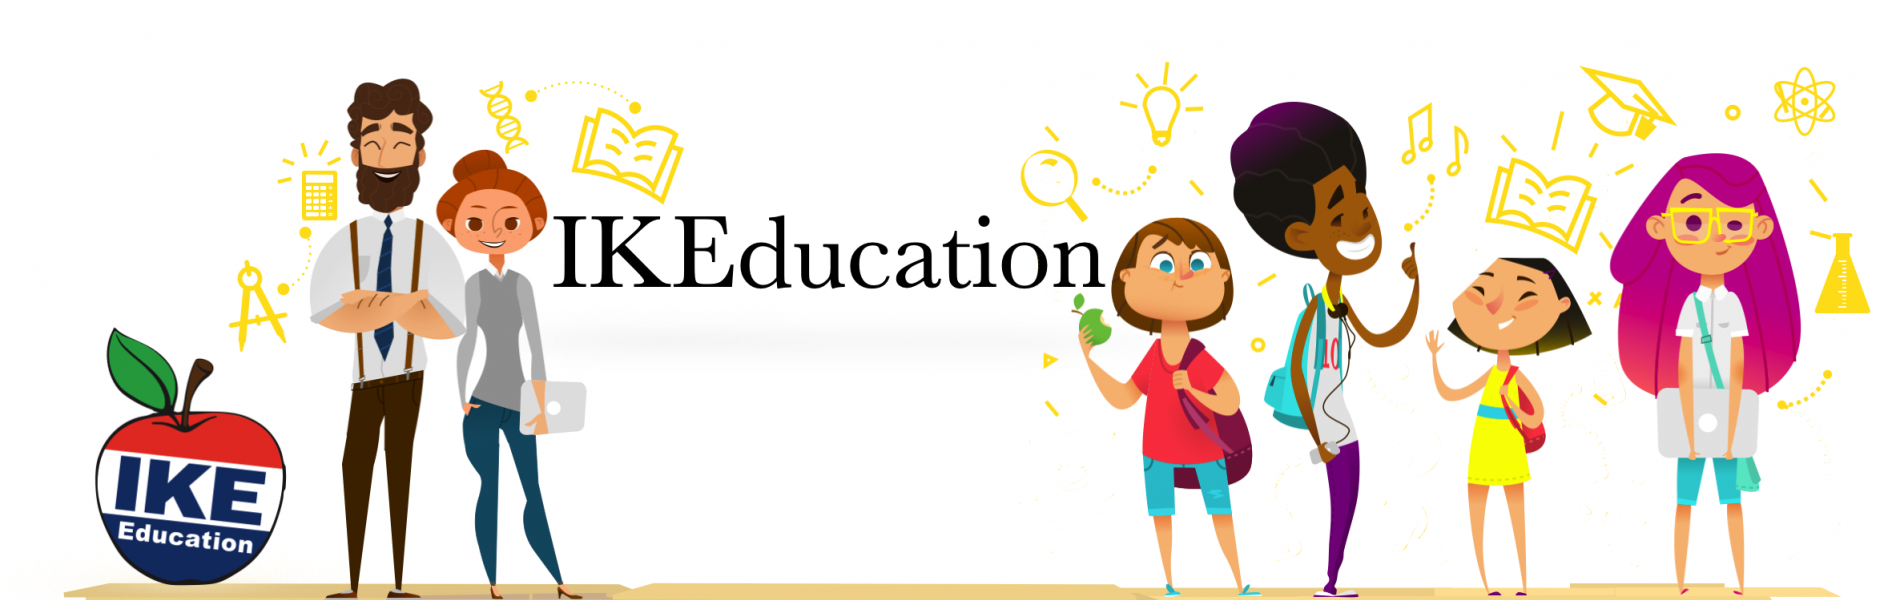 IKEducation banner